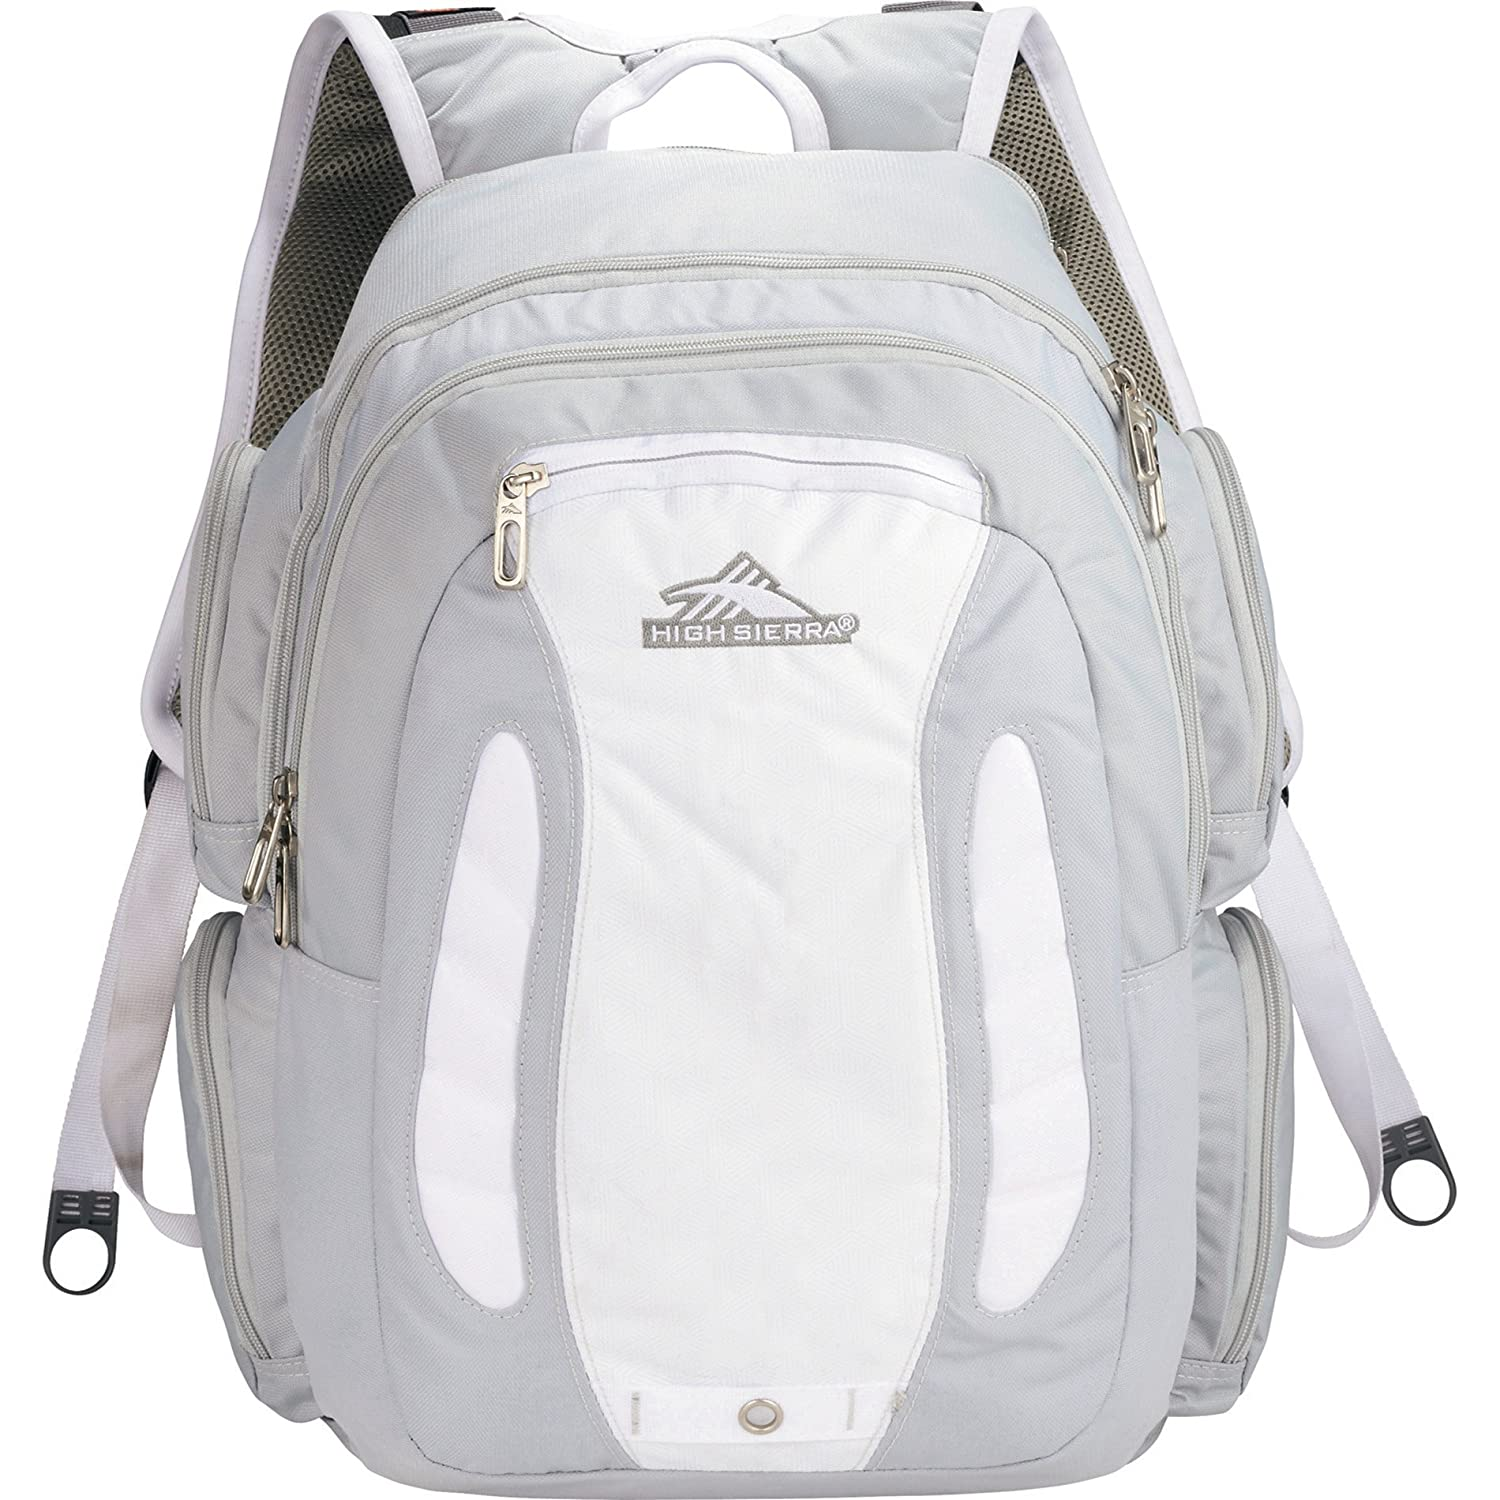 High Sierra Neo Backpack